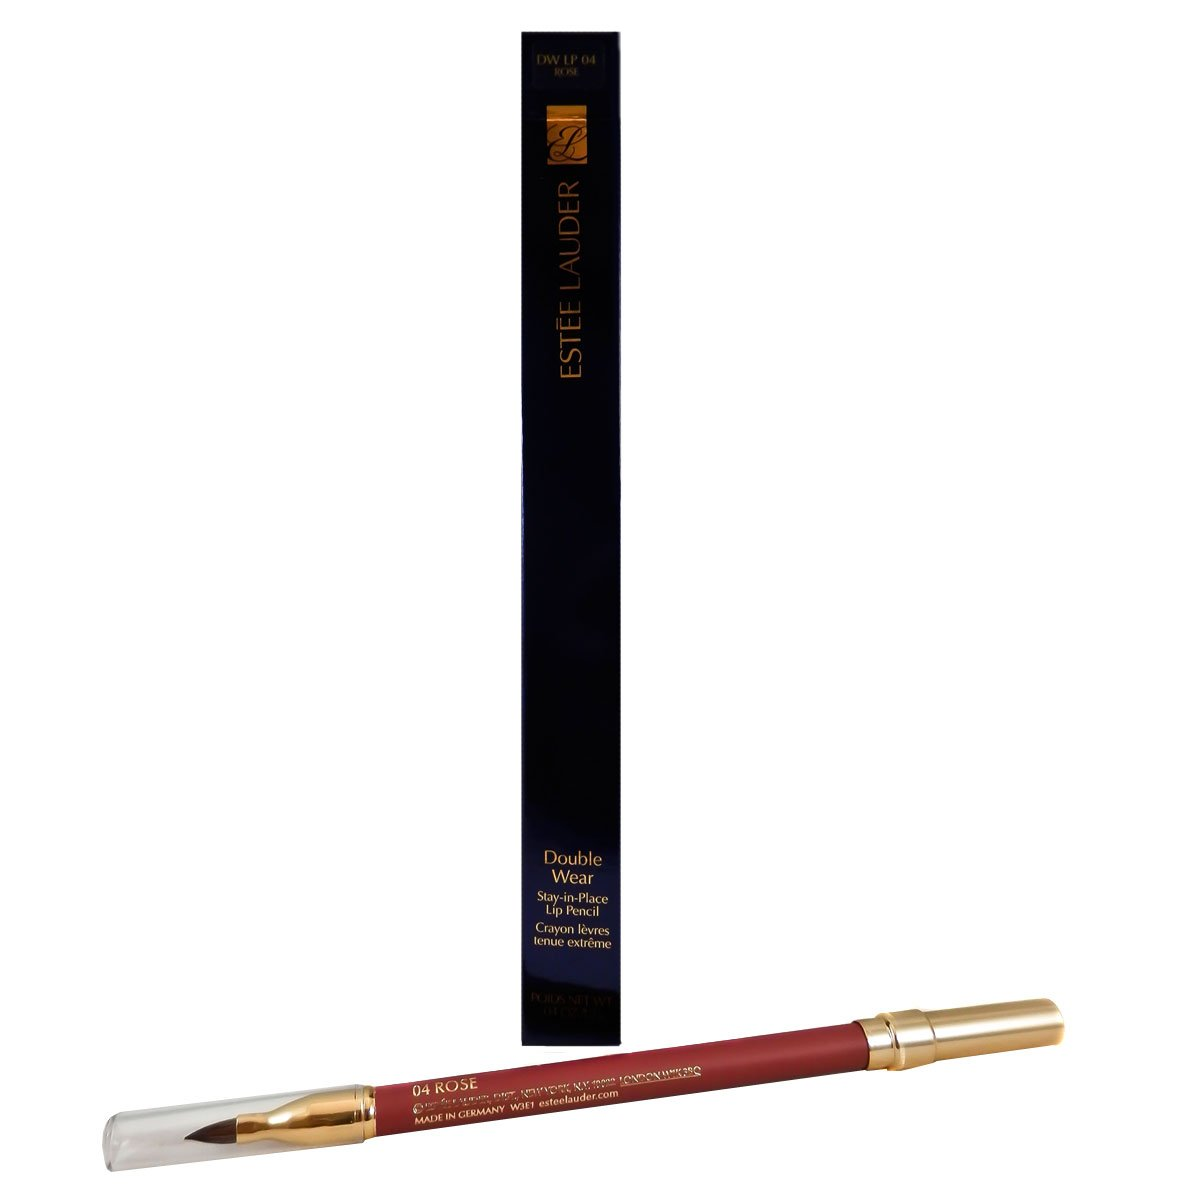 Estee Lauder Double Wear Stay-In-Place Lip Pencil for Women, 04 Rose, 0.04 Ounce